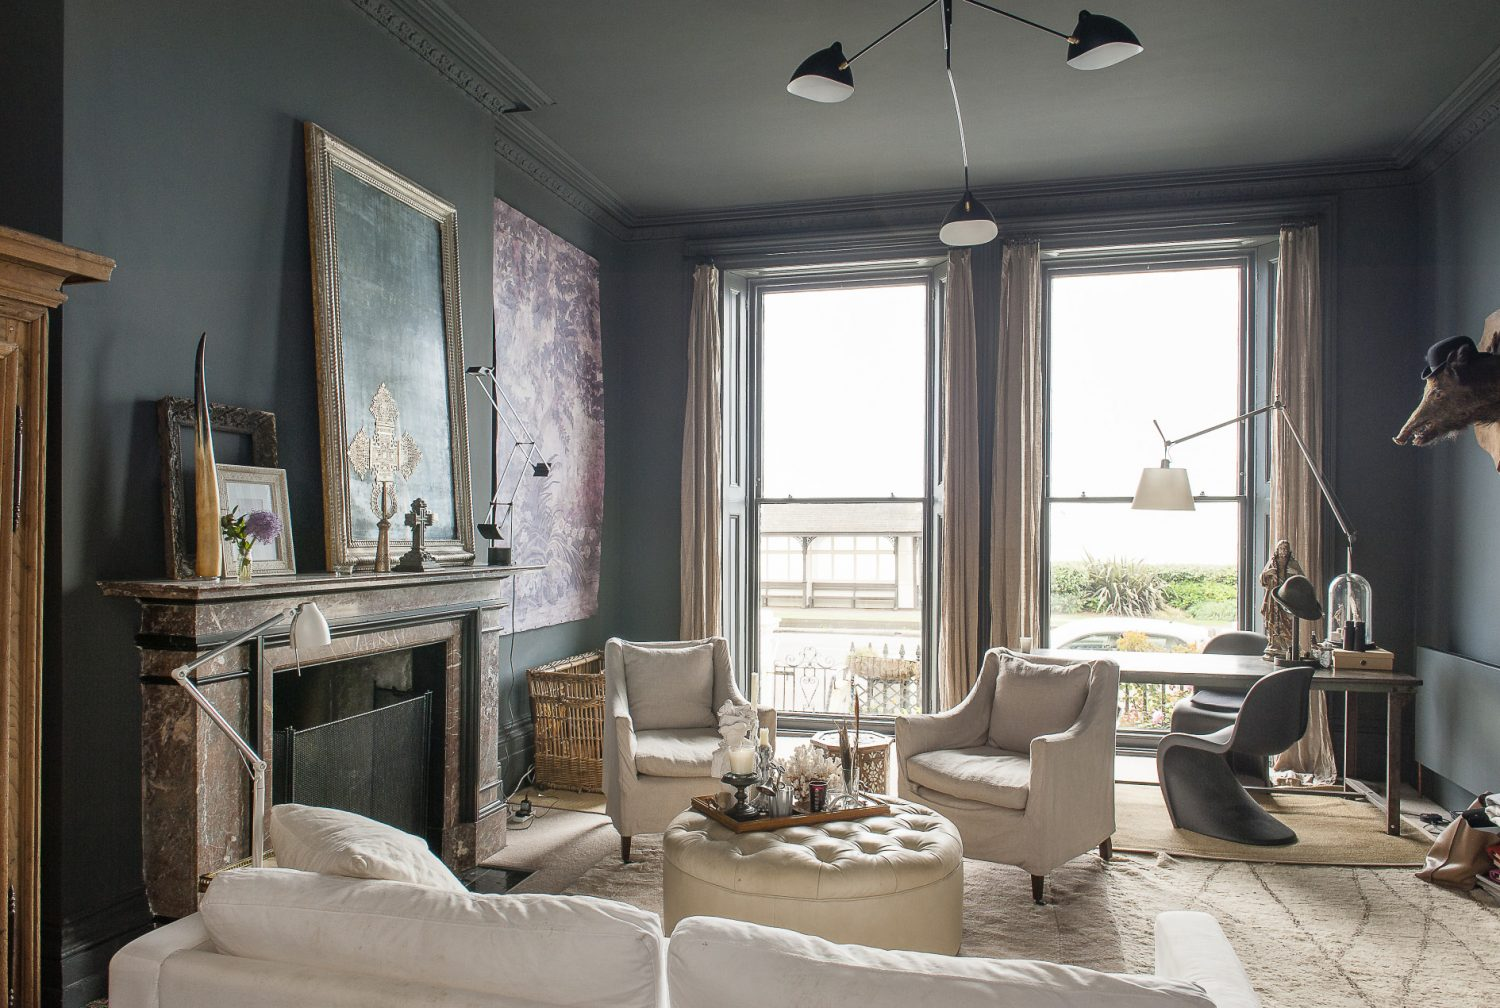 The striking drawing room features wonderfully large windows which span the full length from floor to ceiling